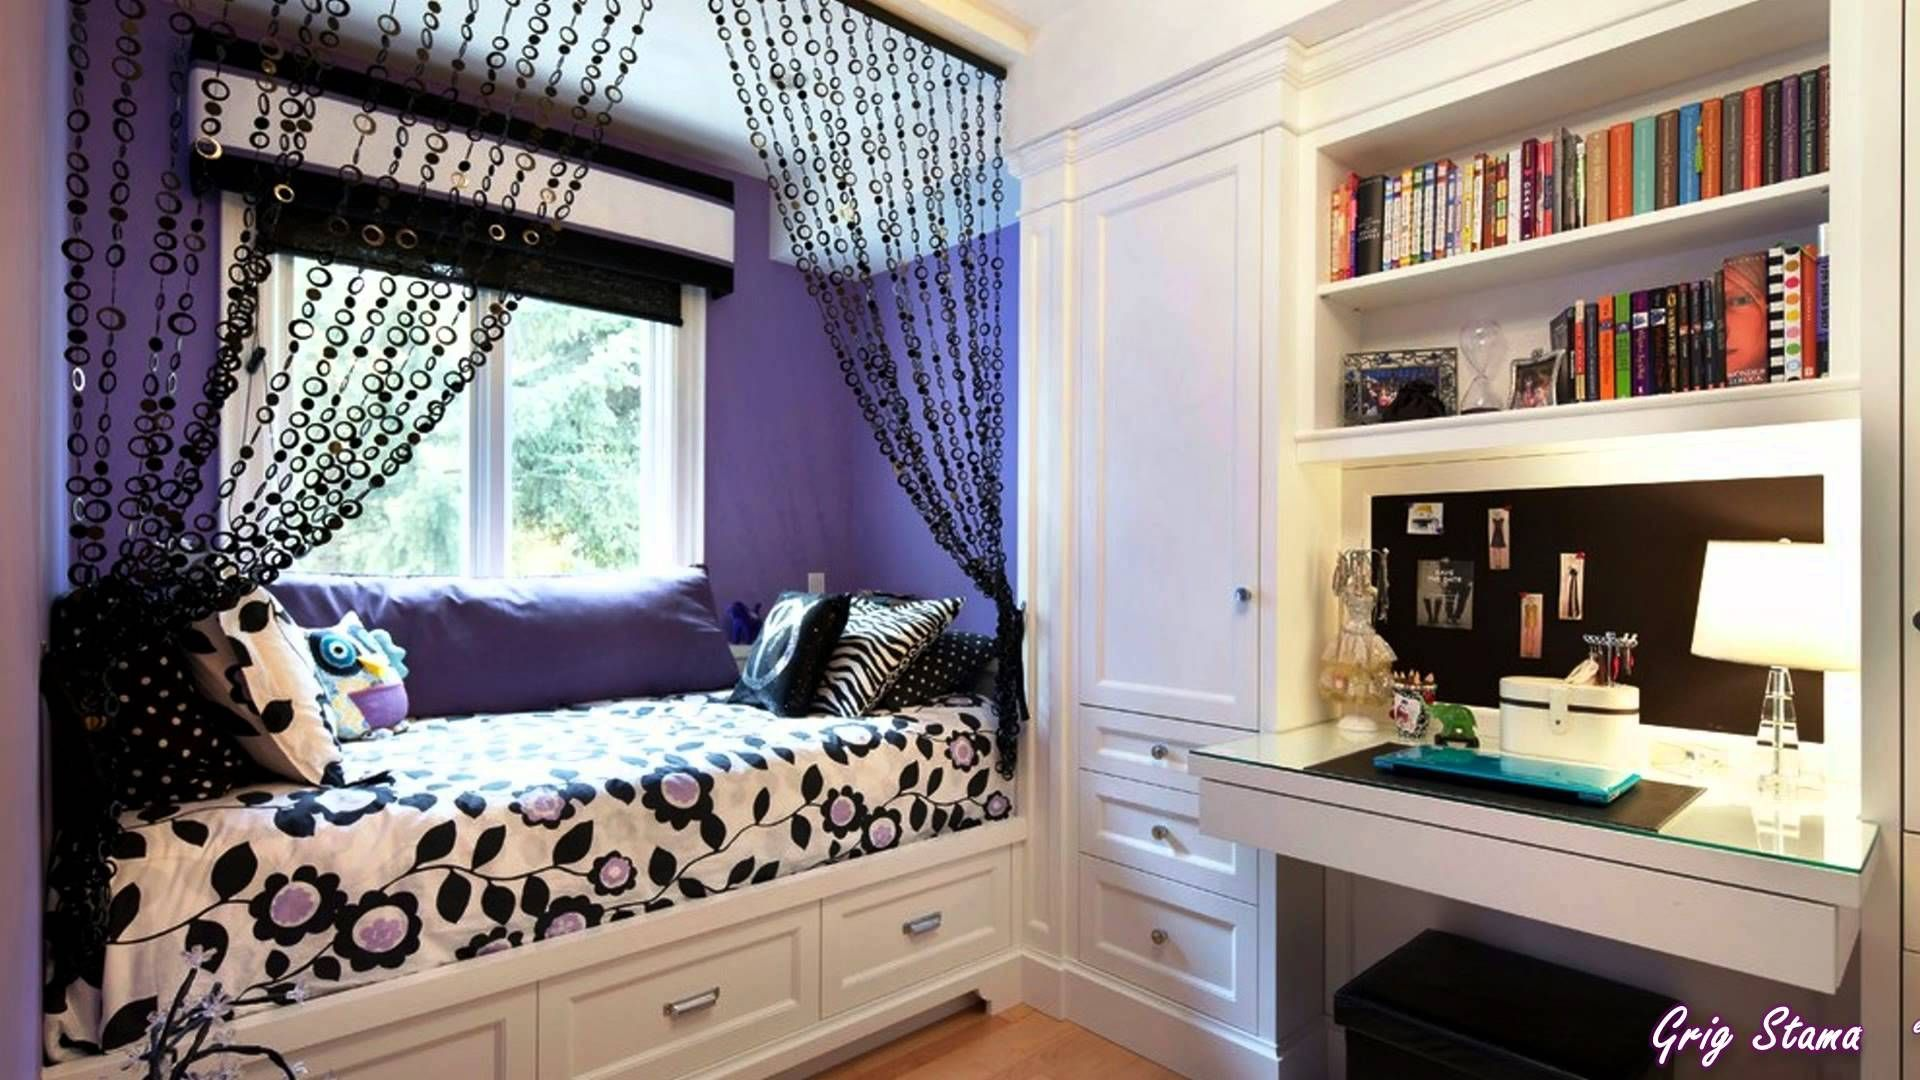 Simple bedroom designs for girls - Bedroom Ideas For Teenage Girls Tumblr Simple Cosmoplast Biz